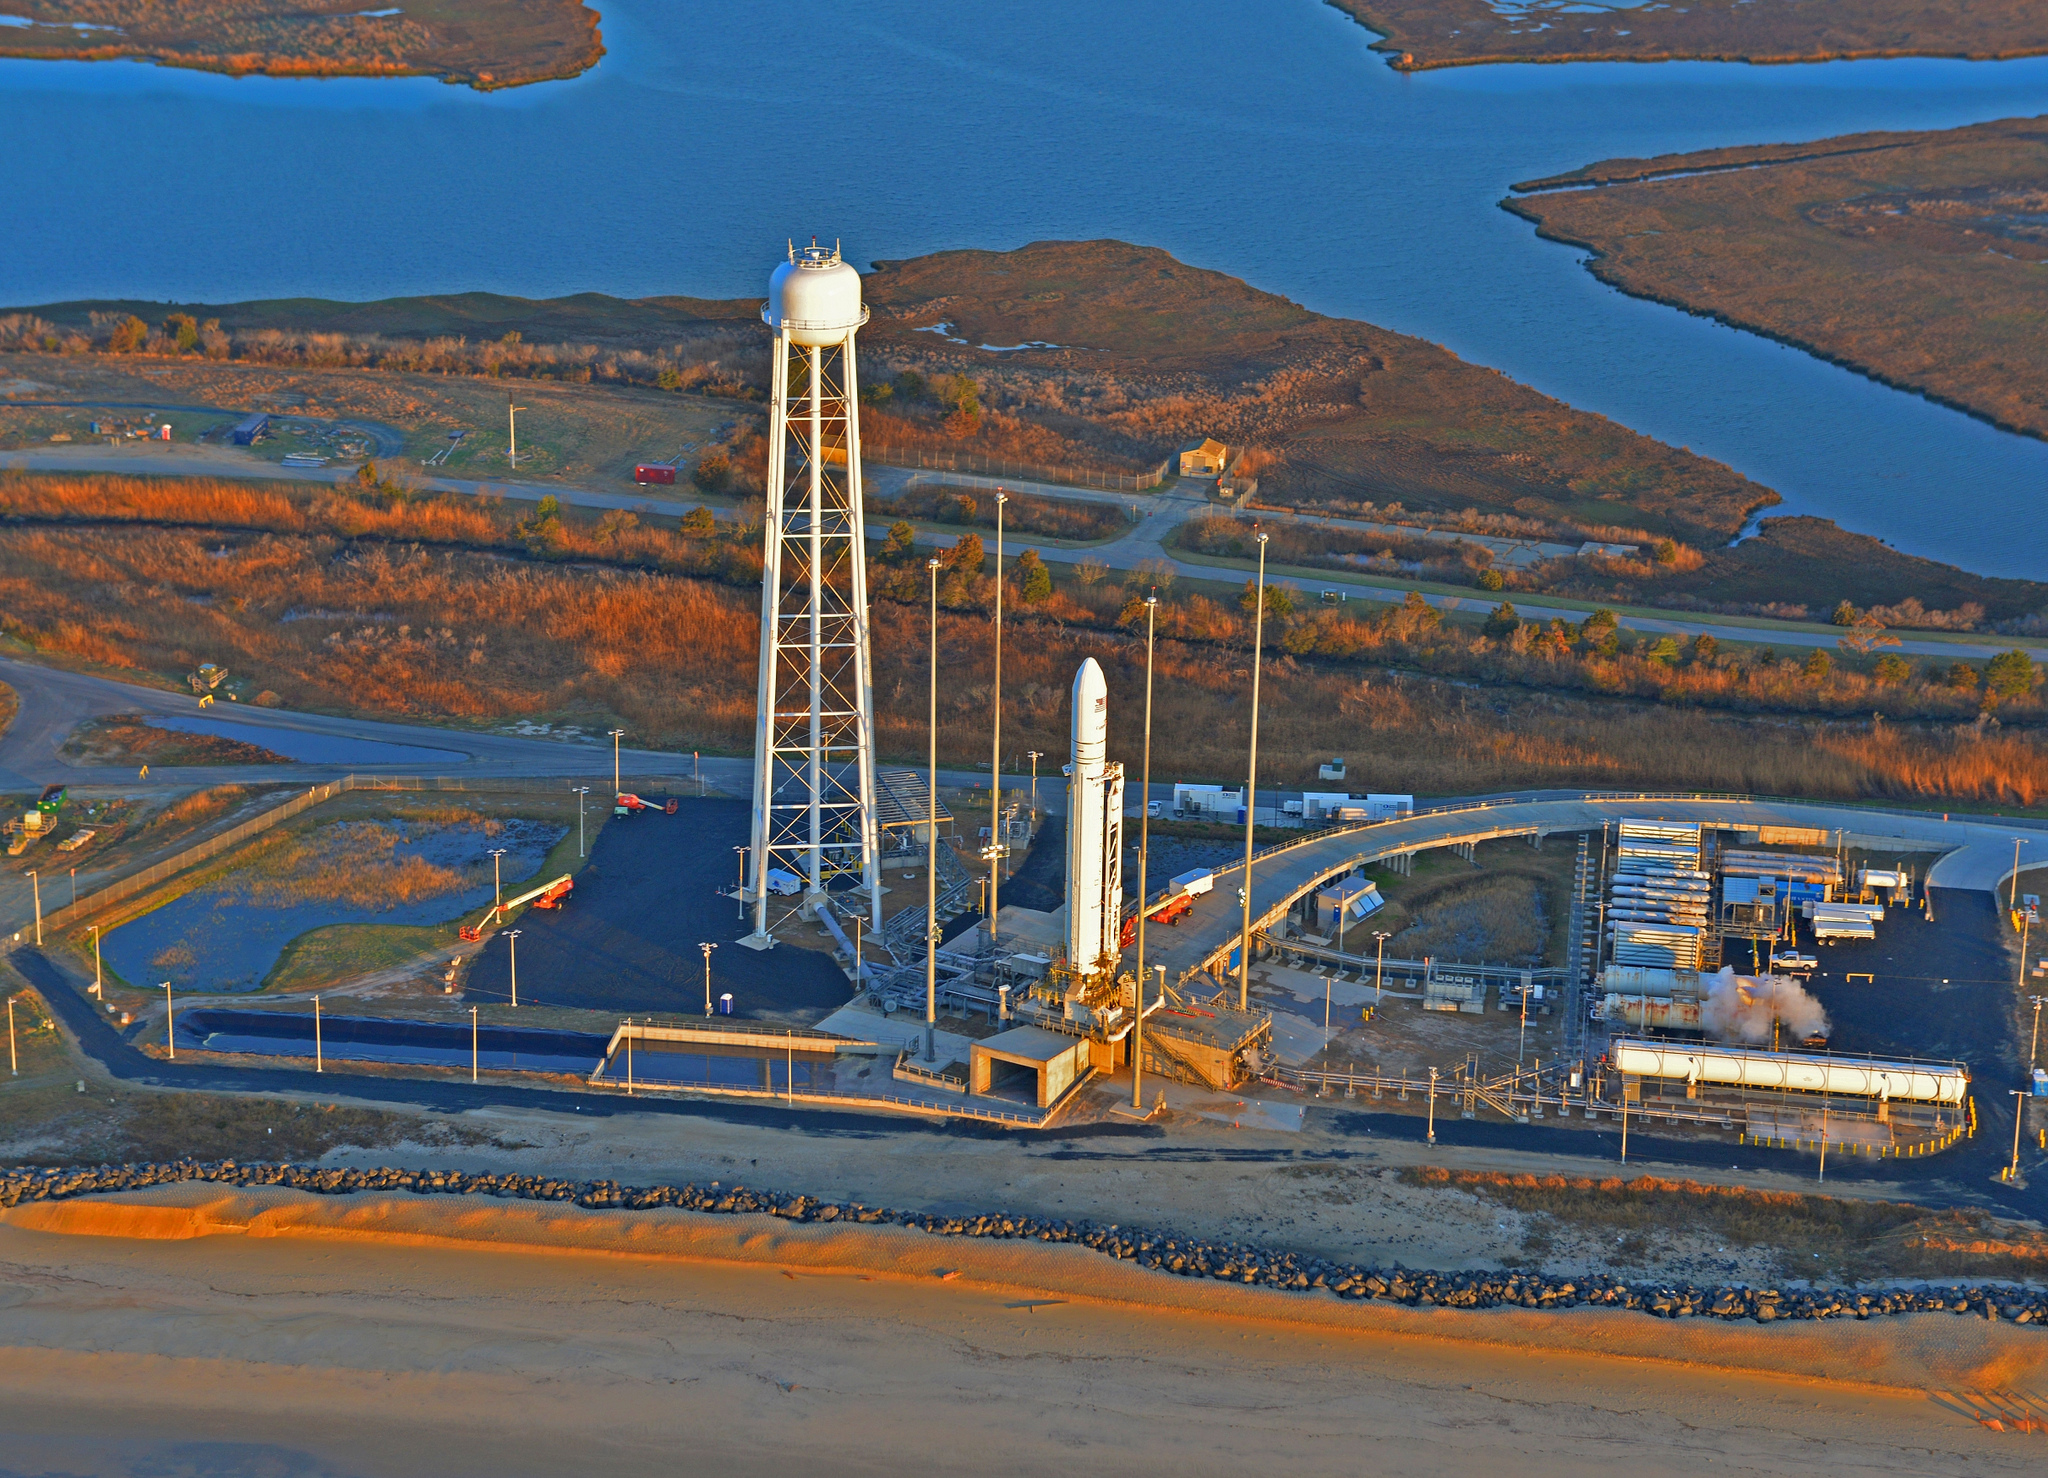 New Private Rocket's Maiden Launch Set for Saturday